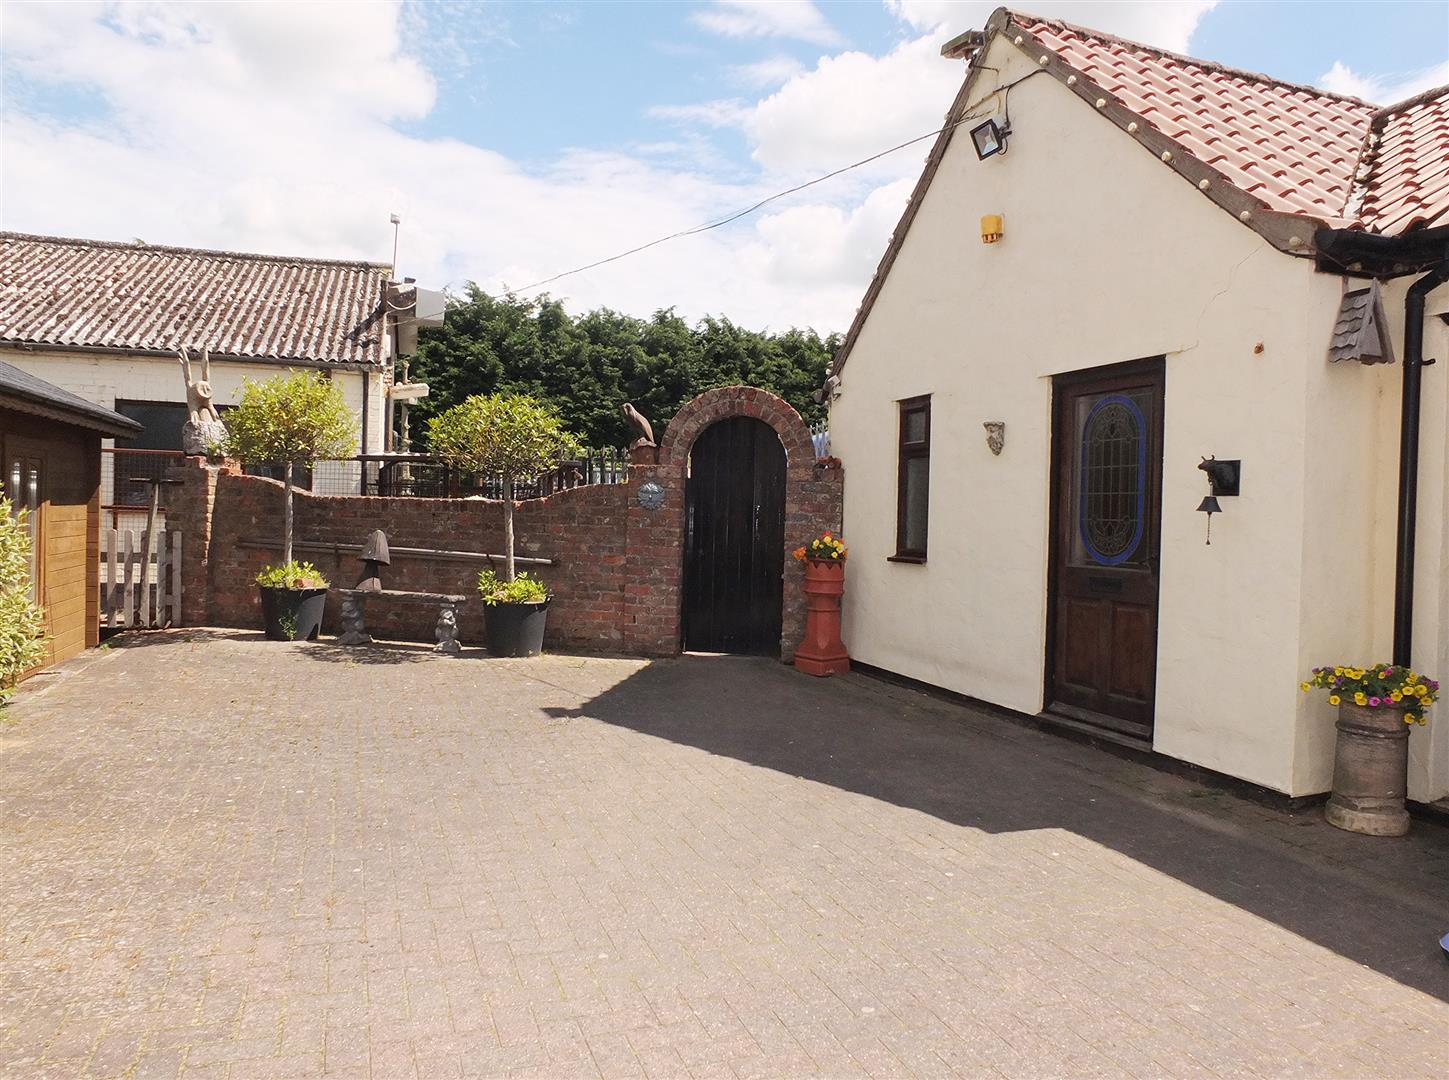 5 bed detached house for sale in Boston, PE20 2DB 33